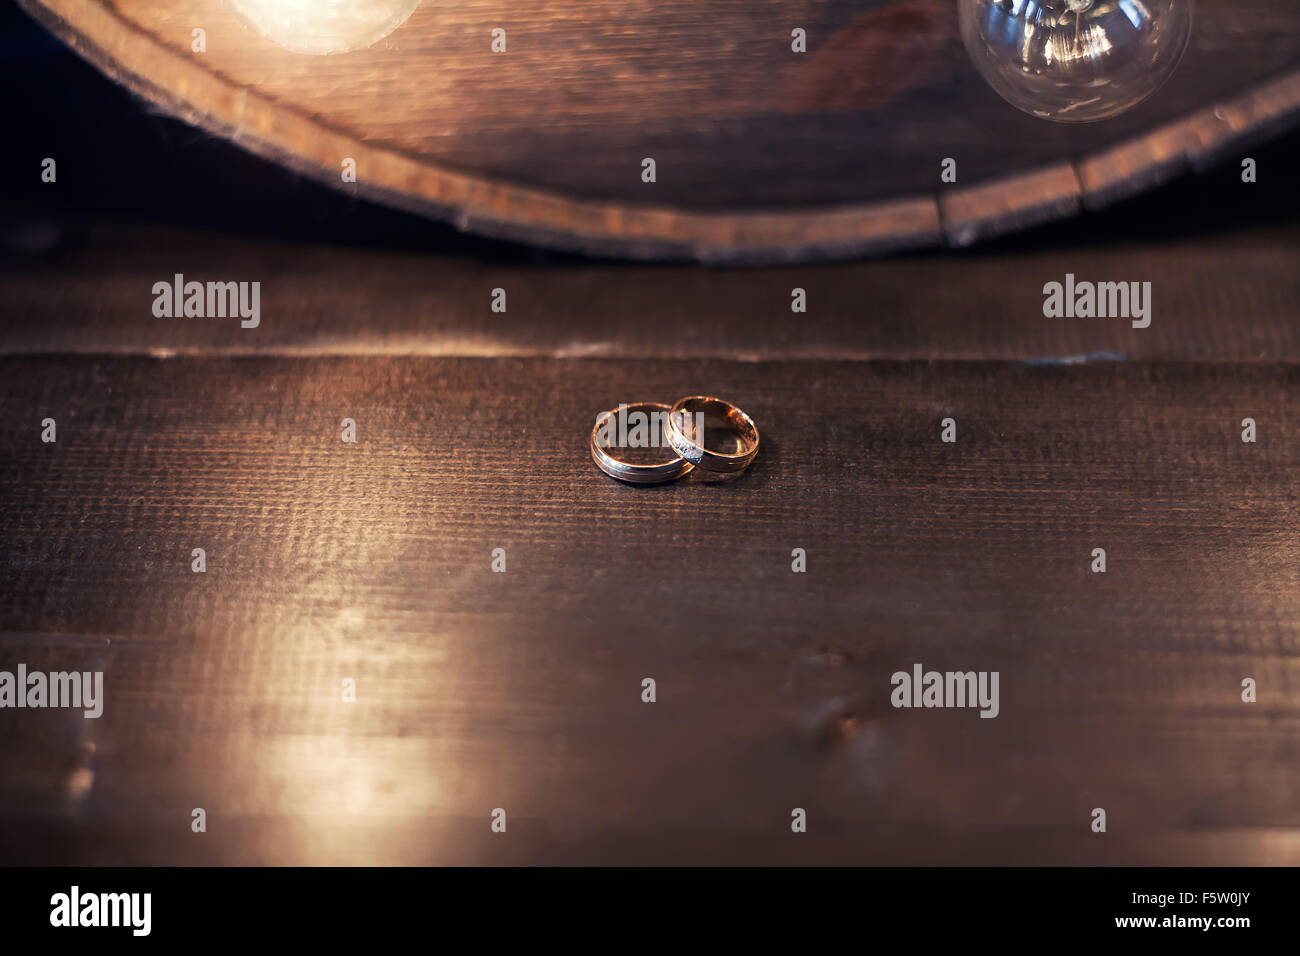 Wedding rings on a wooden table in the lamplight - Stock Image